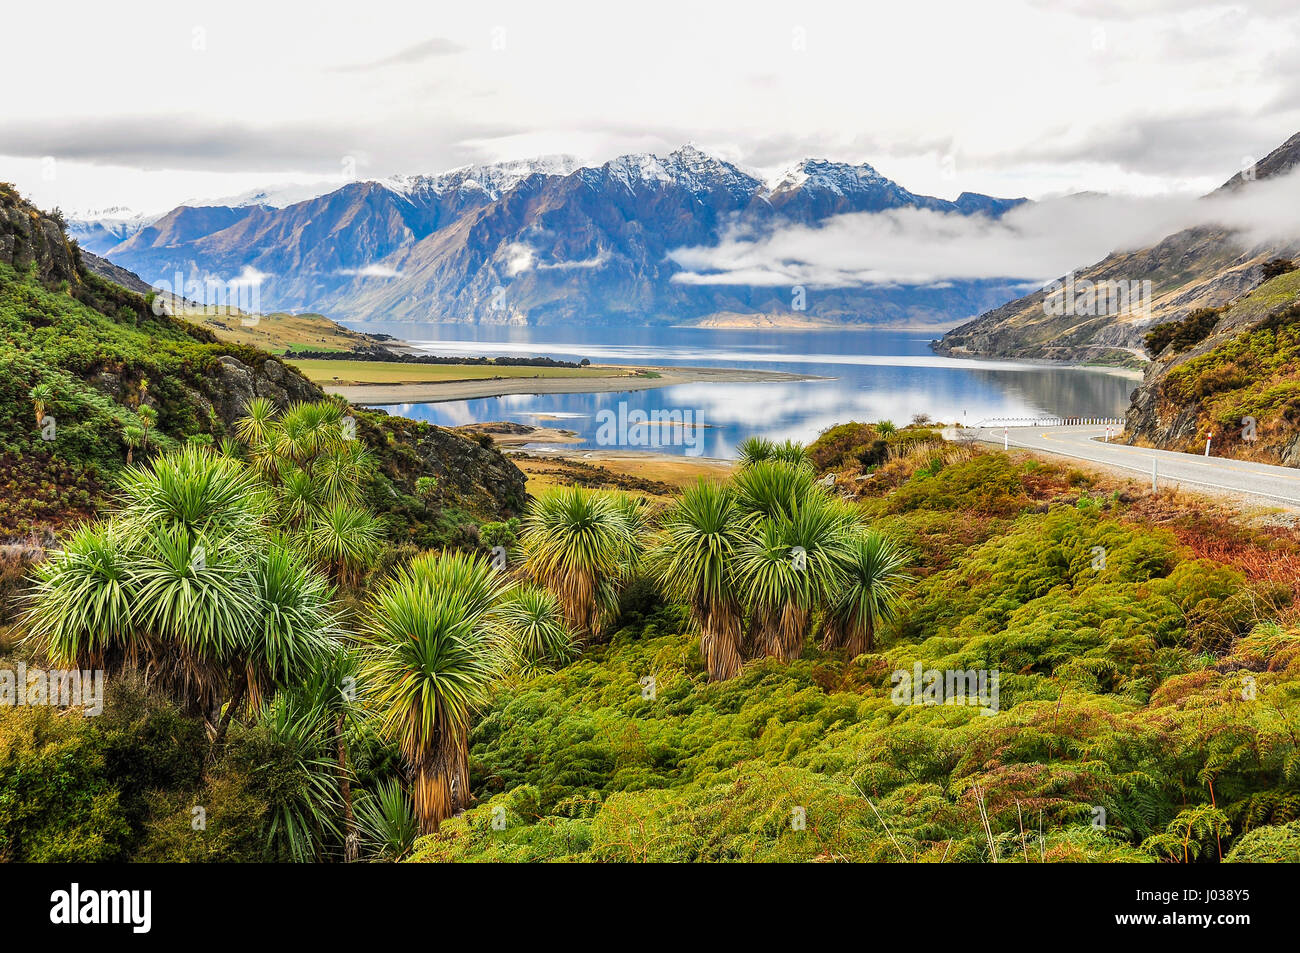 Clouds lying low over a lake near Wanaka in the Southern Lakes Region of New Zealand - Stock Image